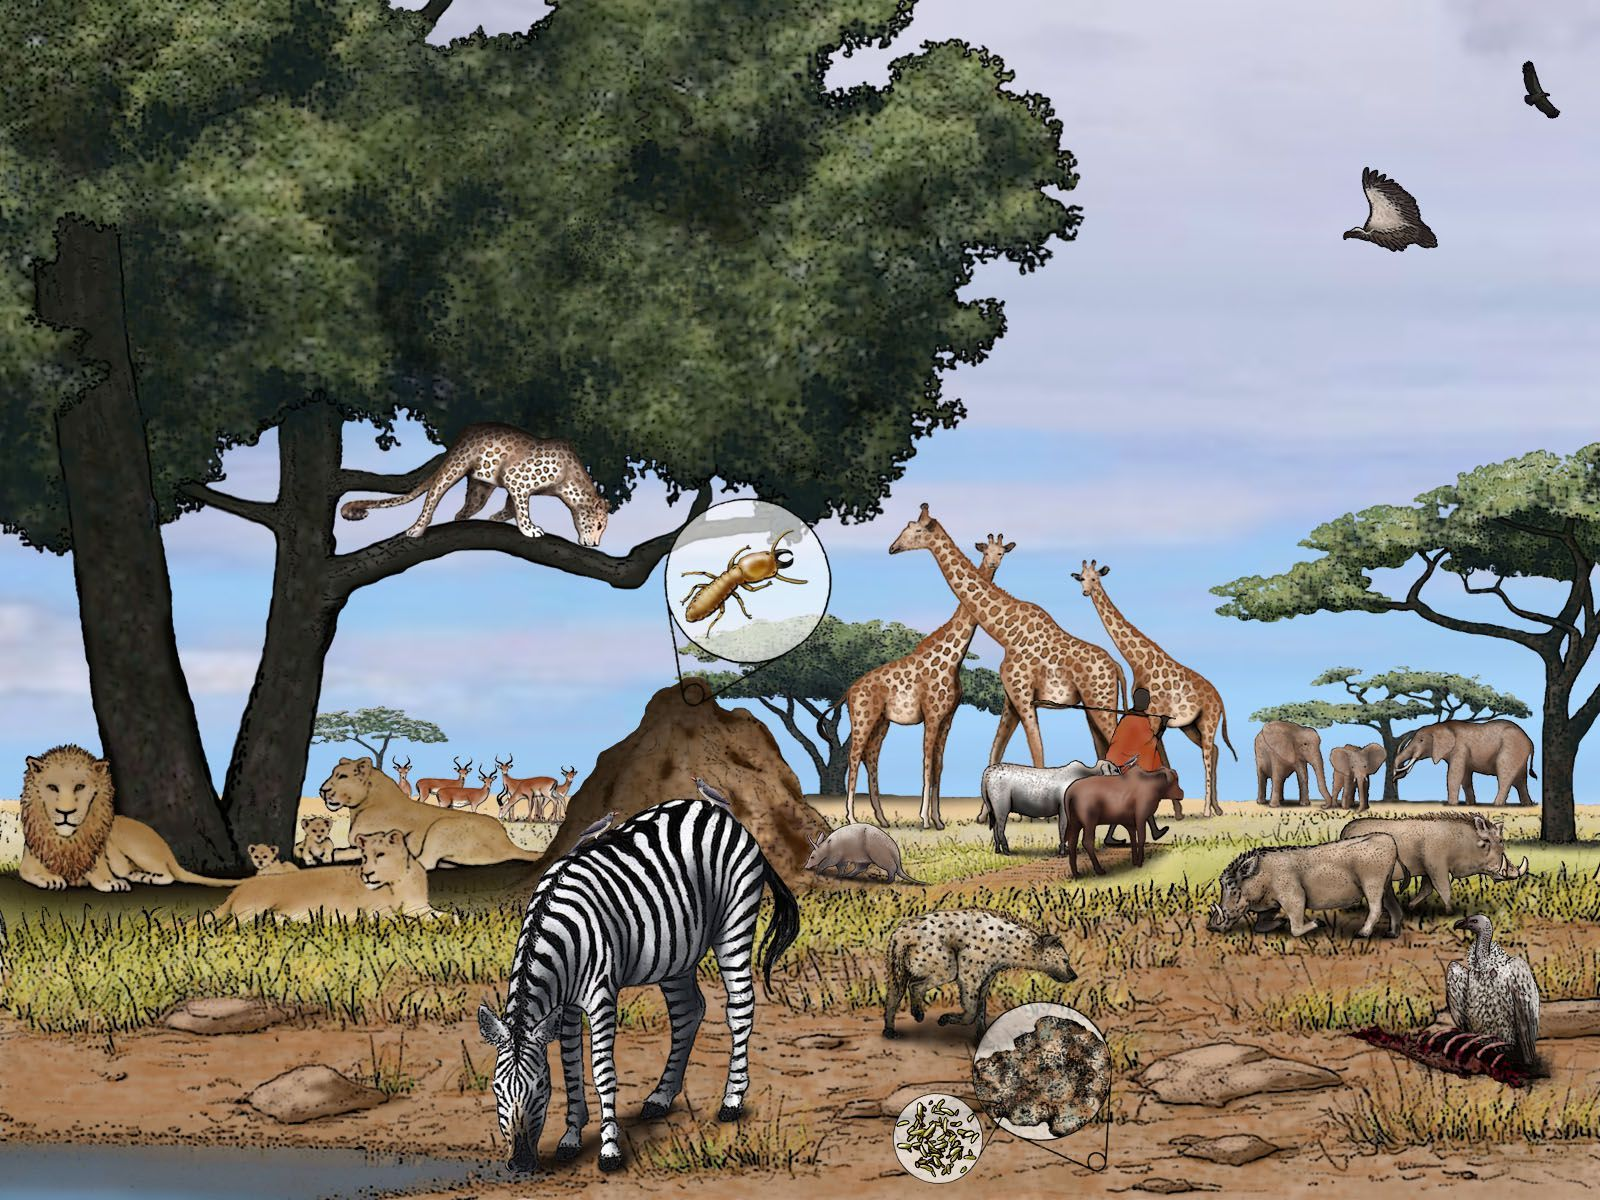 An Illustration Gallery And Information On The African